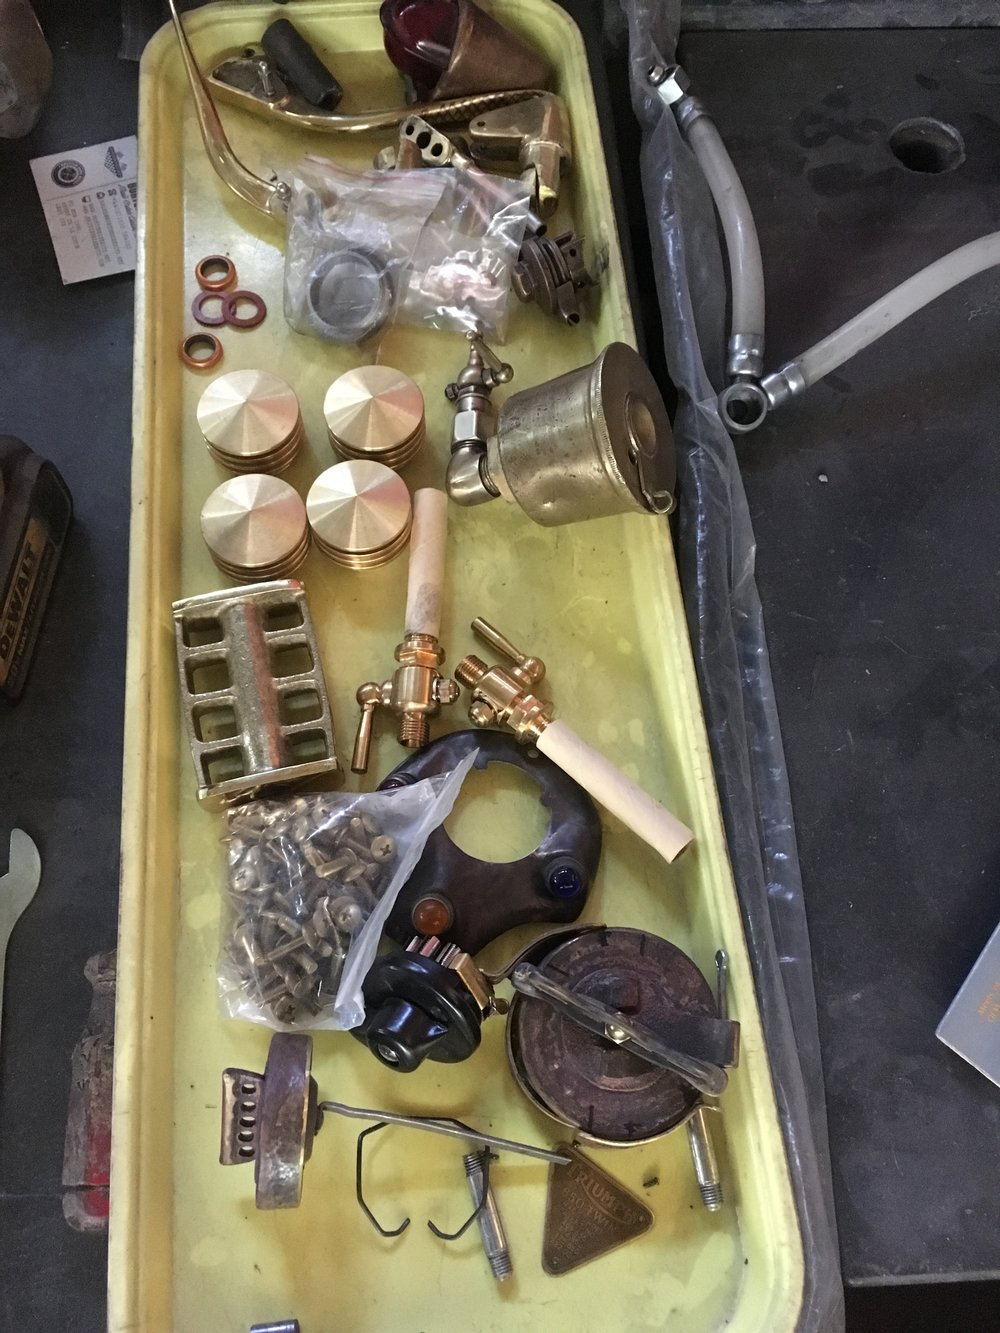 The pile of brass accessories. All the brass will need to be worked over to get the finishes more uniform. One of the great things about brass is the many hues it can produce when patinated.